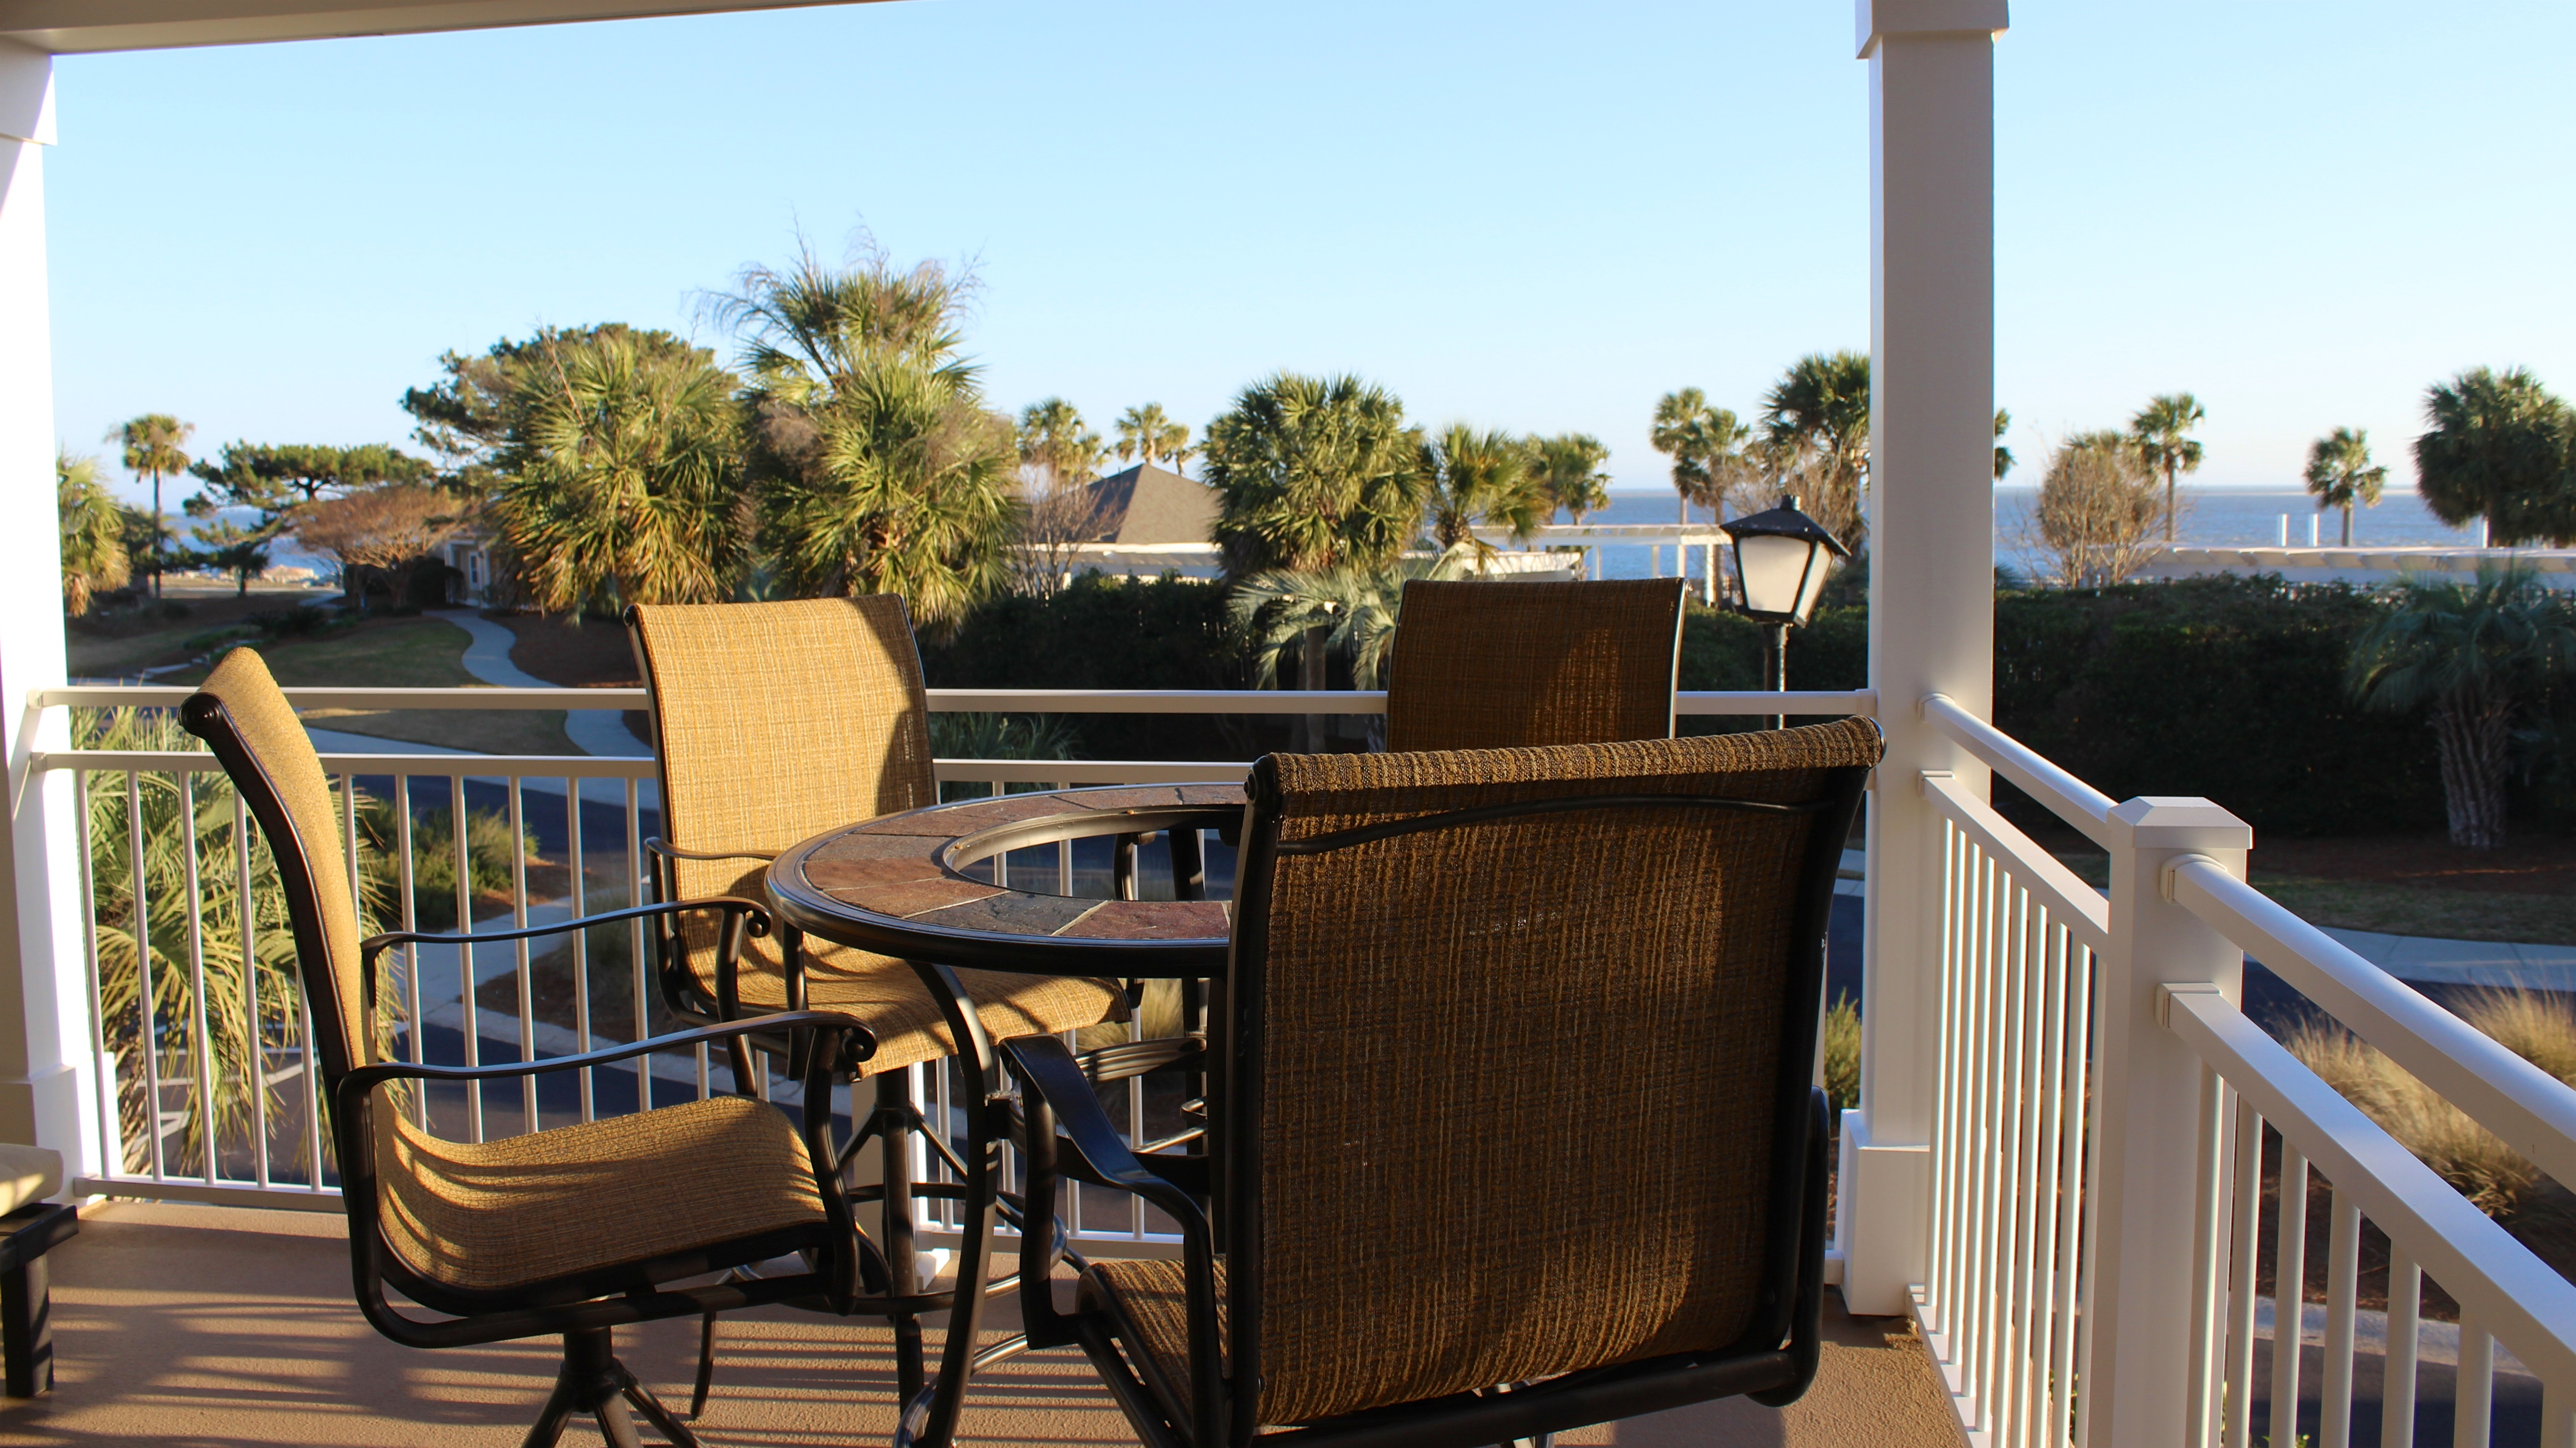 Gather around the table overlooking the ocean for appetizers and drinks.